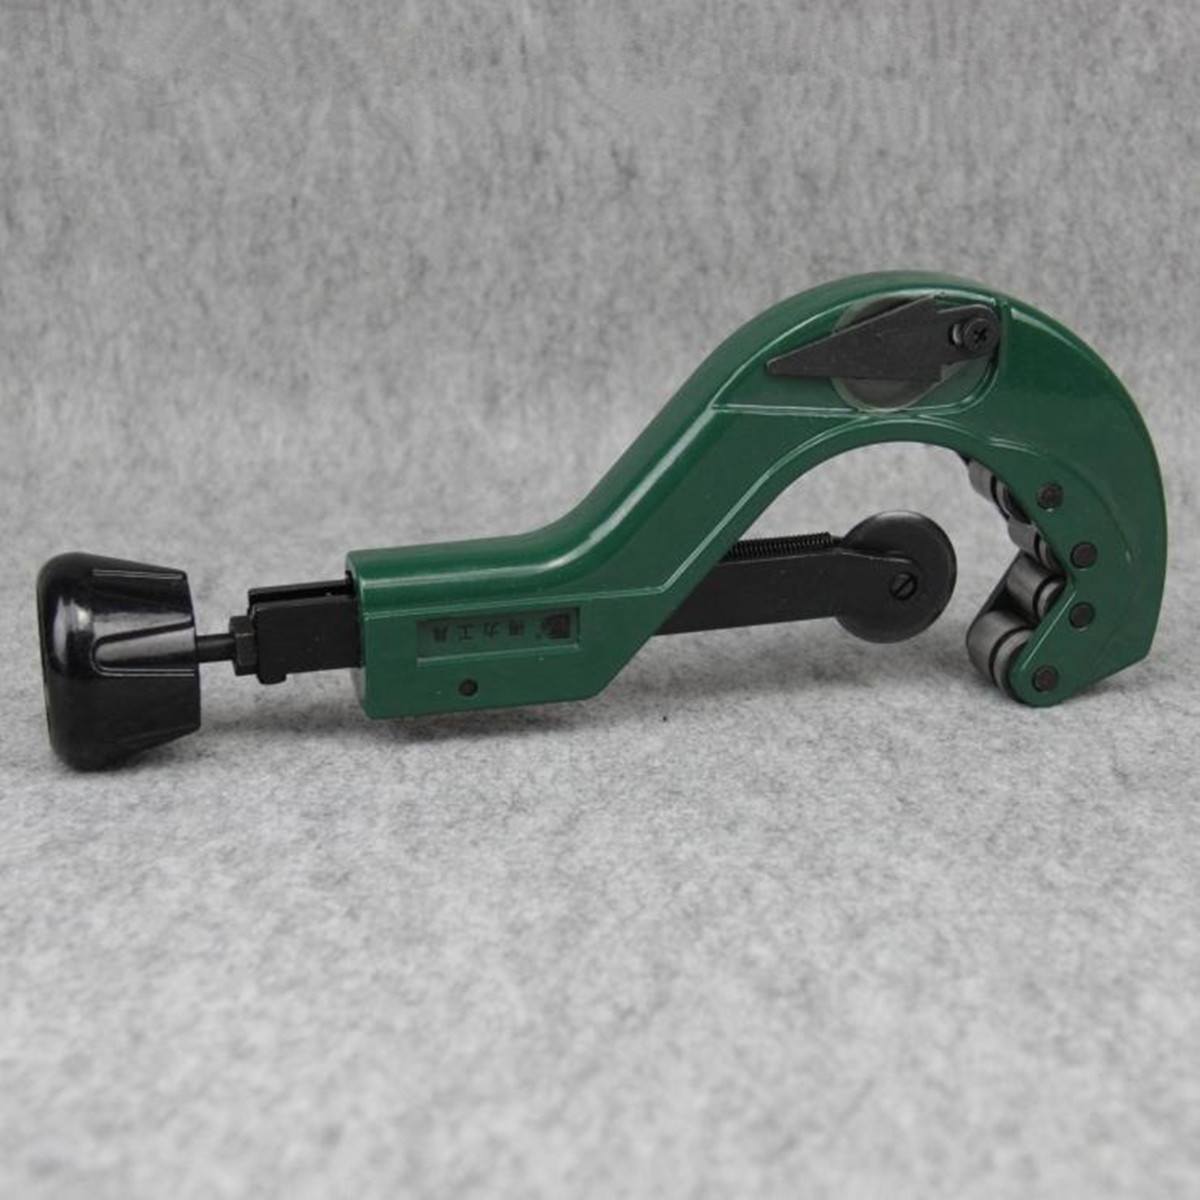 6-64mm Heavy   Quick Release Aluminum Plumbing Plastic Tube PipeCutter Green Hand Cutting Tools Built In Pipe Reamer6-64mm Heavy   Quick Release Aluminum Plumbing Plastic Tube PipeCutter Green Hand Cutting Tools Built In Pipe Reamer